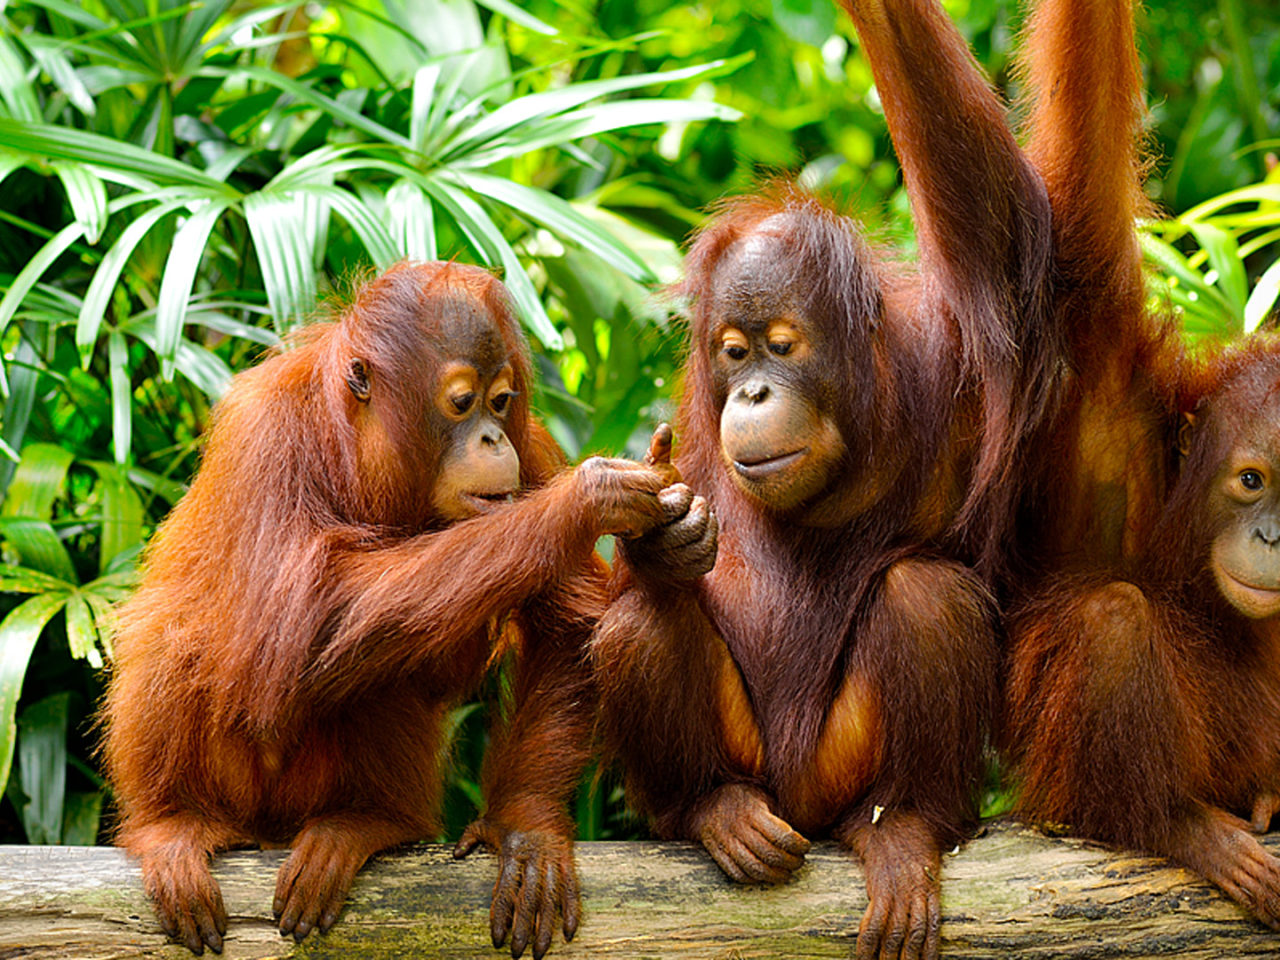 Cute Baby Wallpaper Download Hd Jungle And Borneo Island Malaysia Cute Family Orangutans